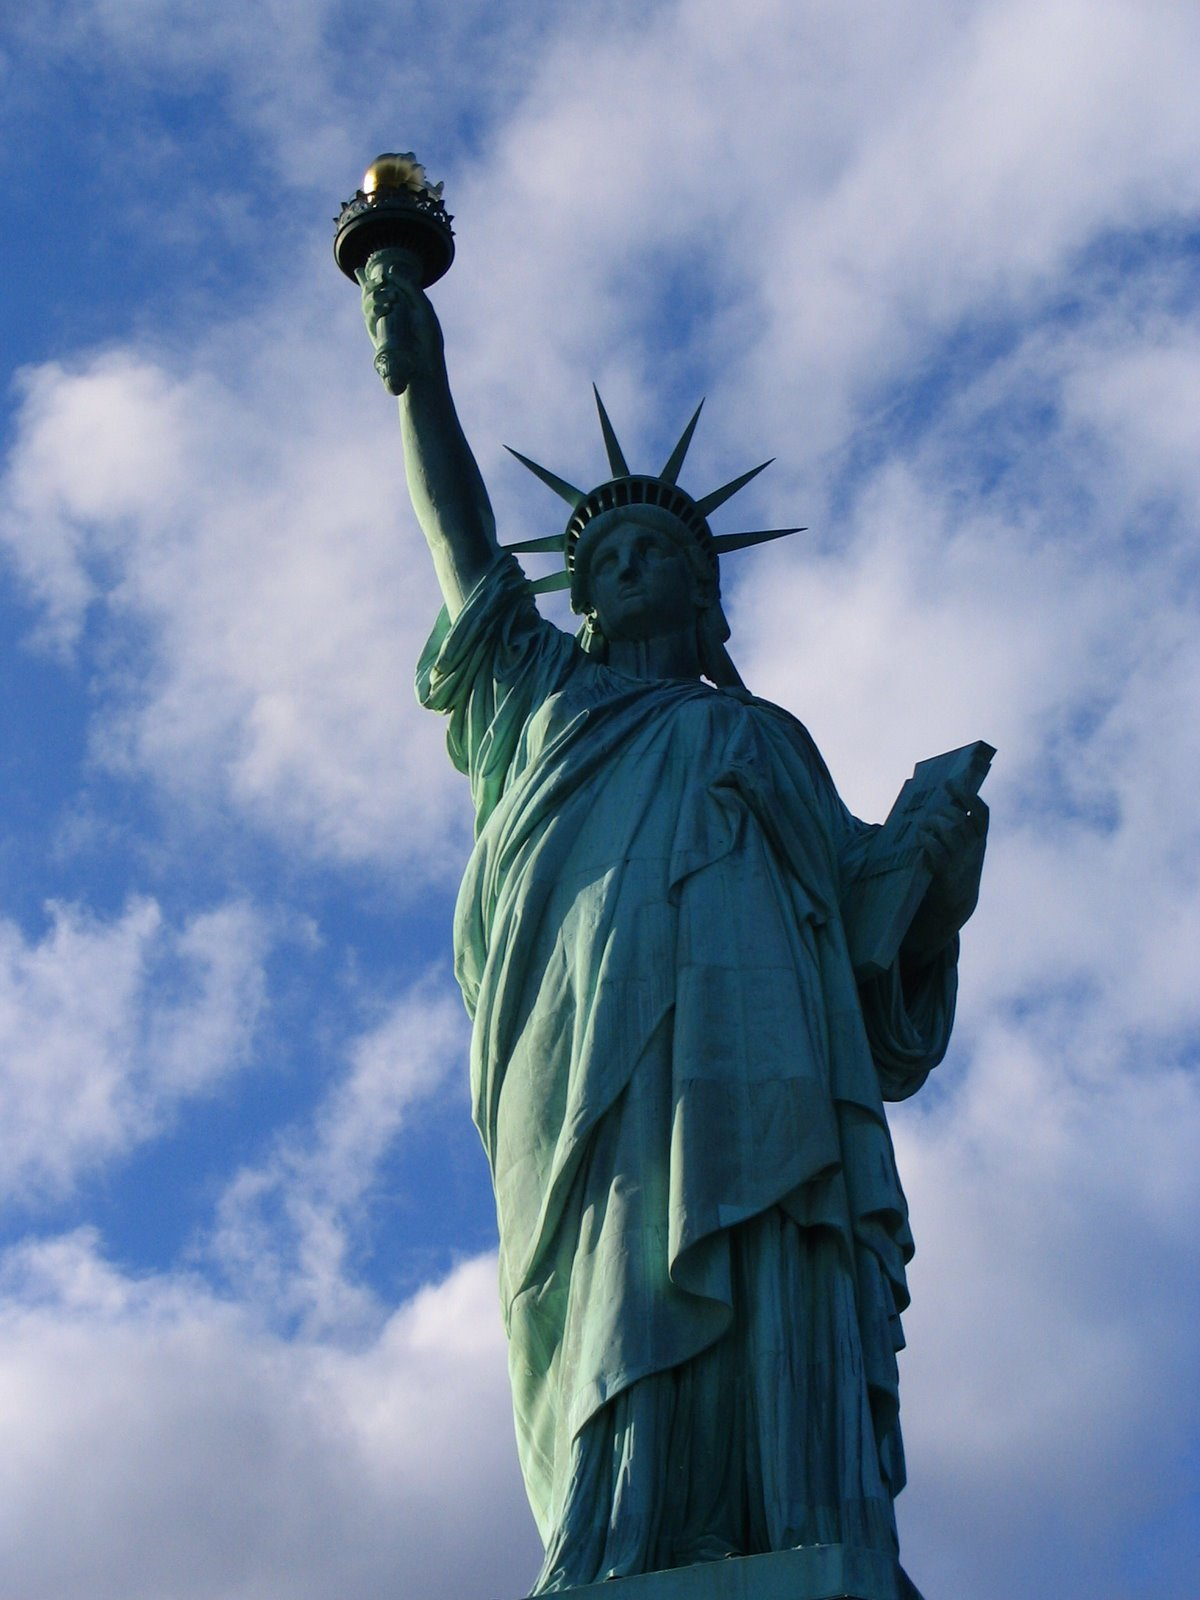 Statue of Liberty, Department of Interior, National Park Service